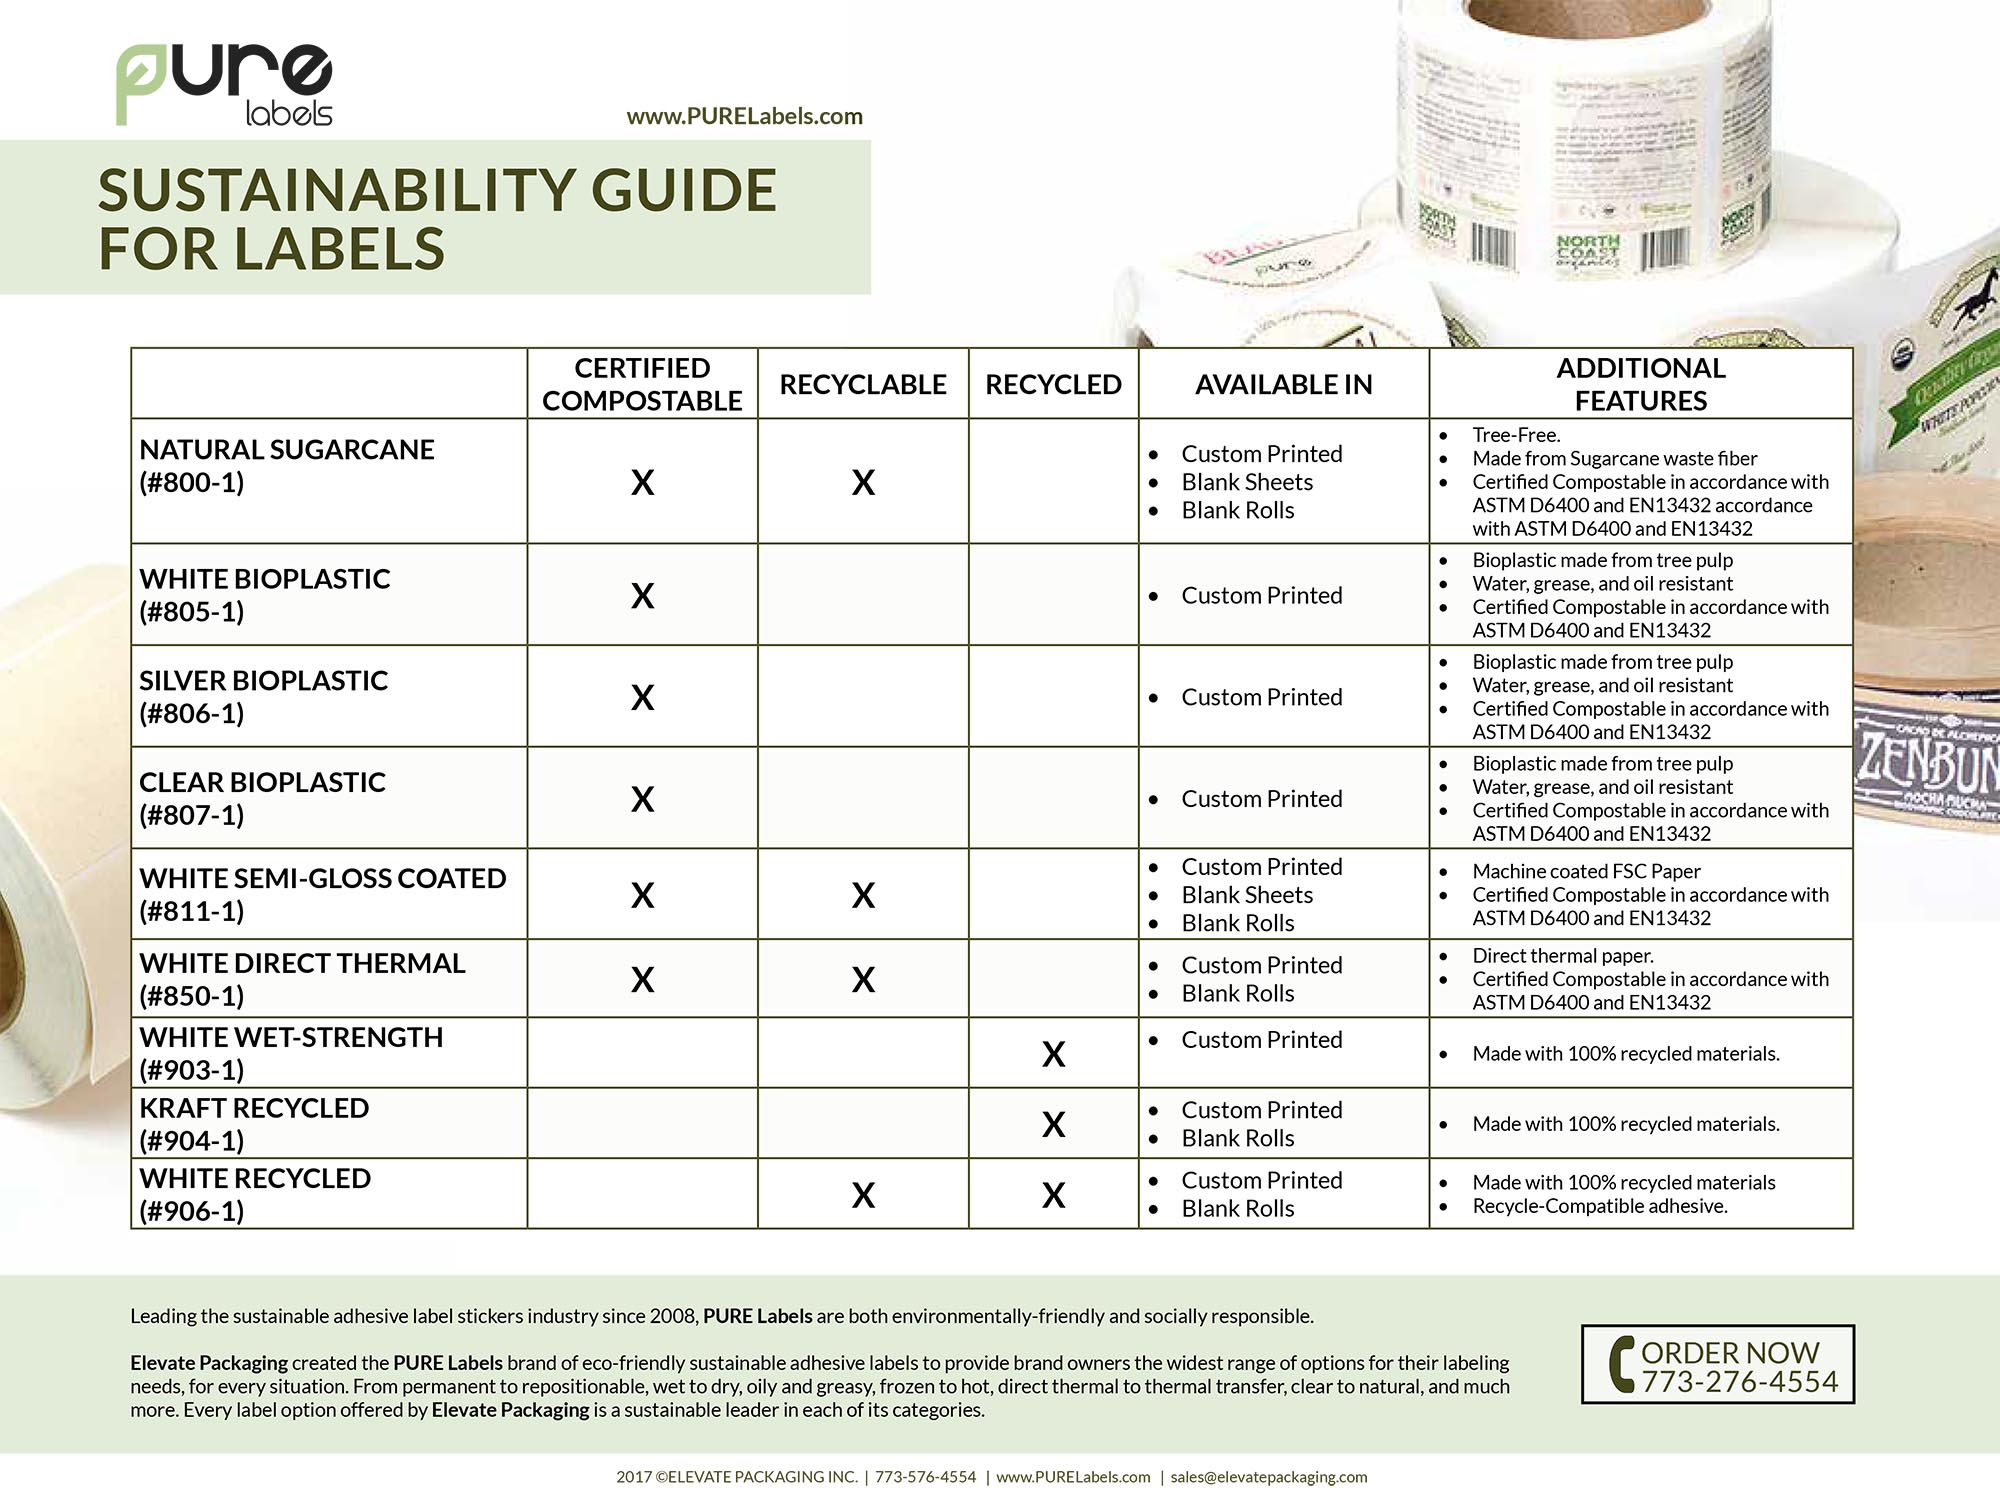 PURE Labels Sustainability Guide